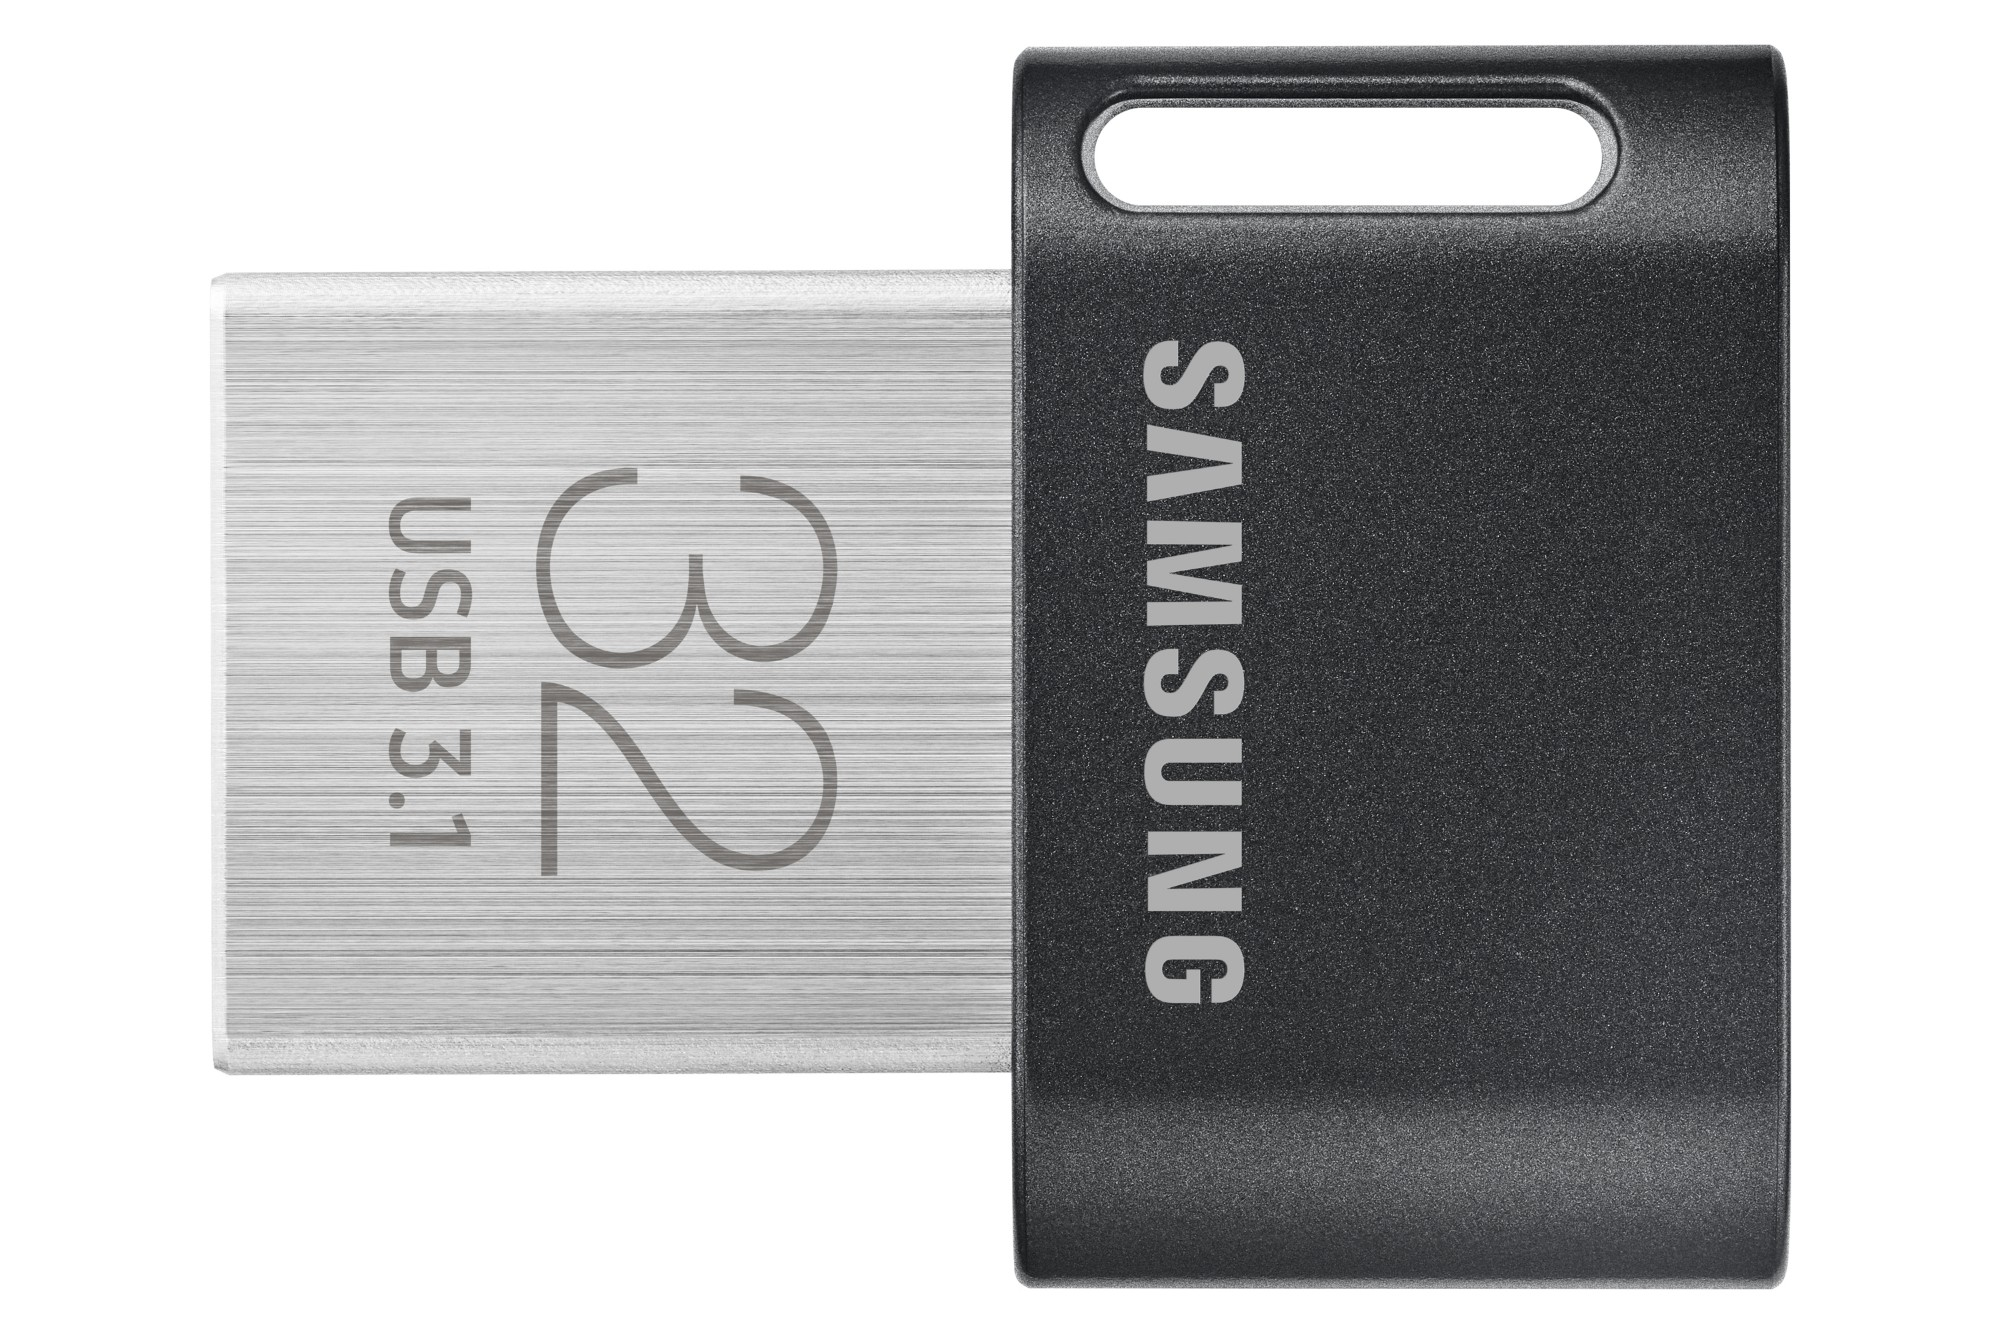 Flash Drive Duo - 32GB - USB Stick - USB 3.0